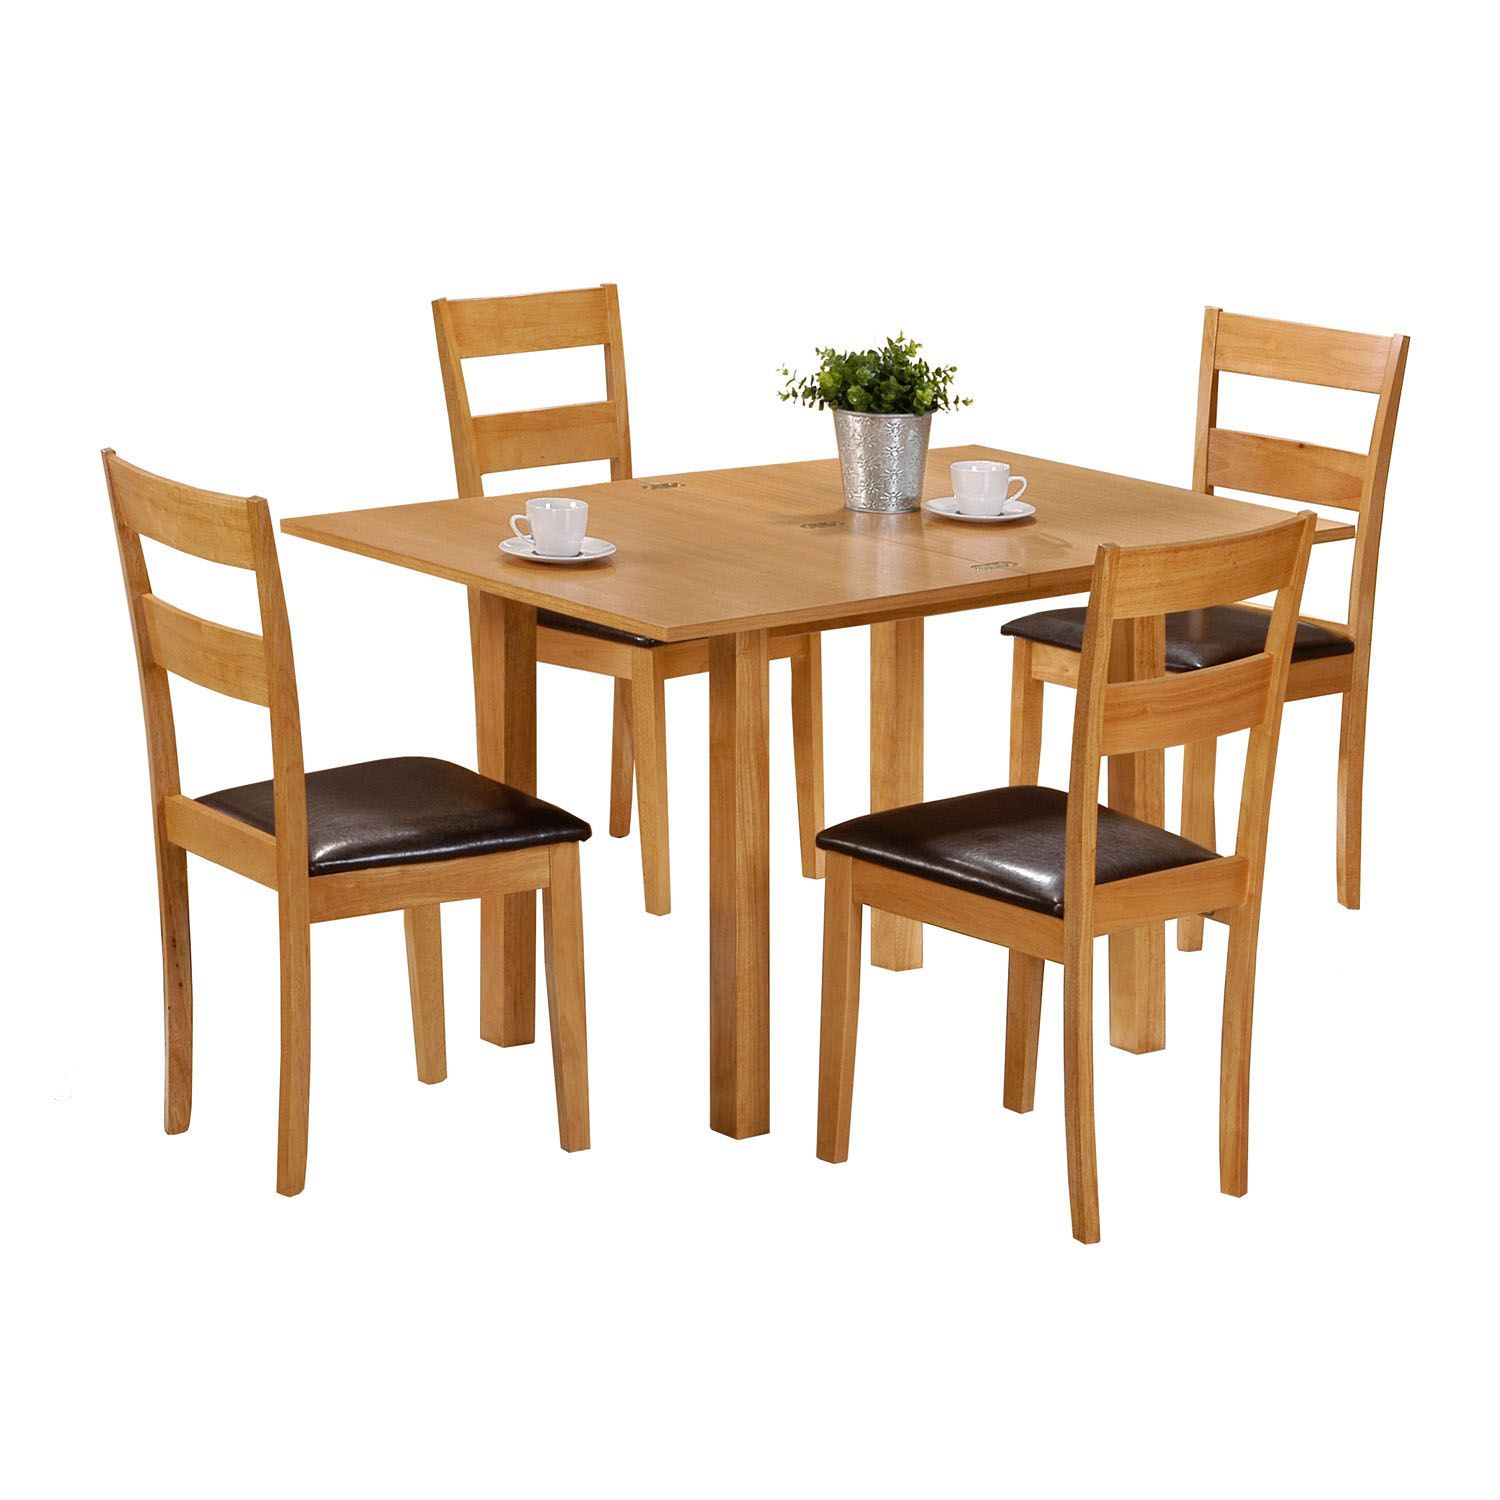 Awesome Dining Table 4 Chairs Great Ideas